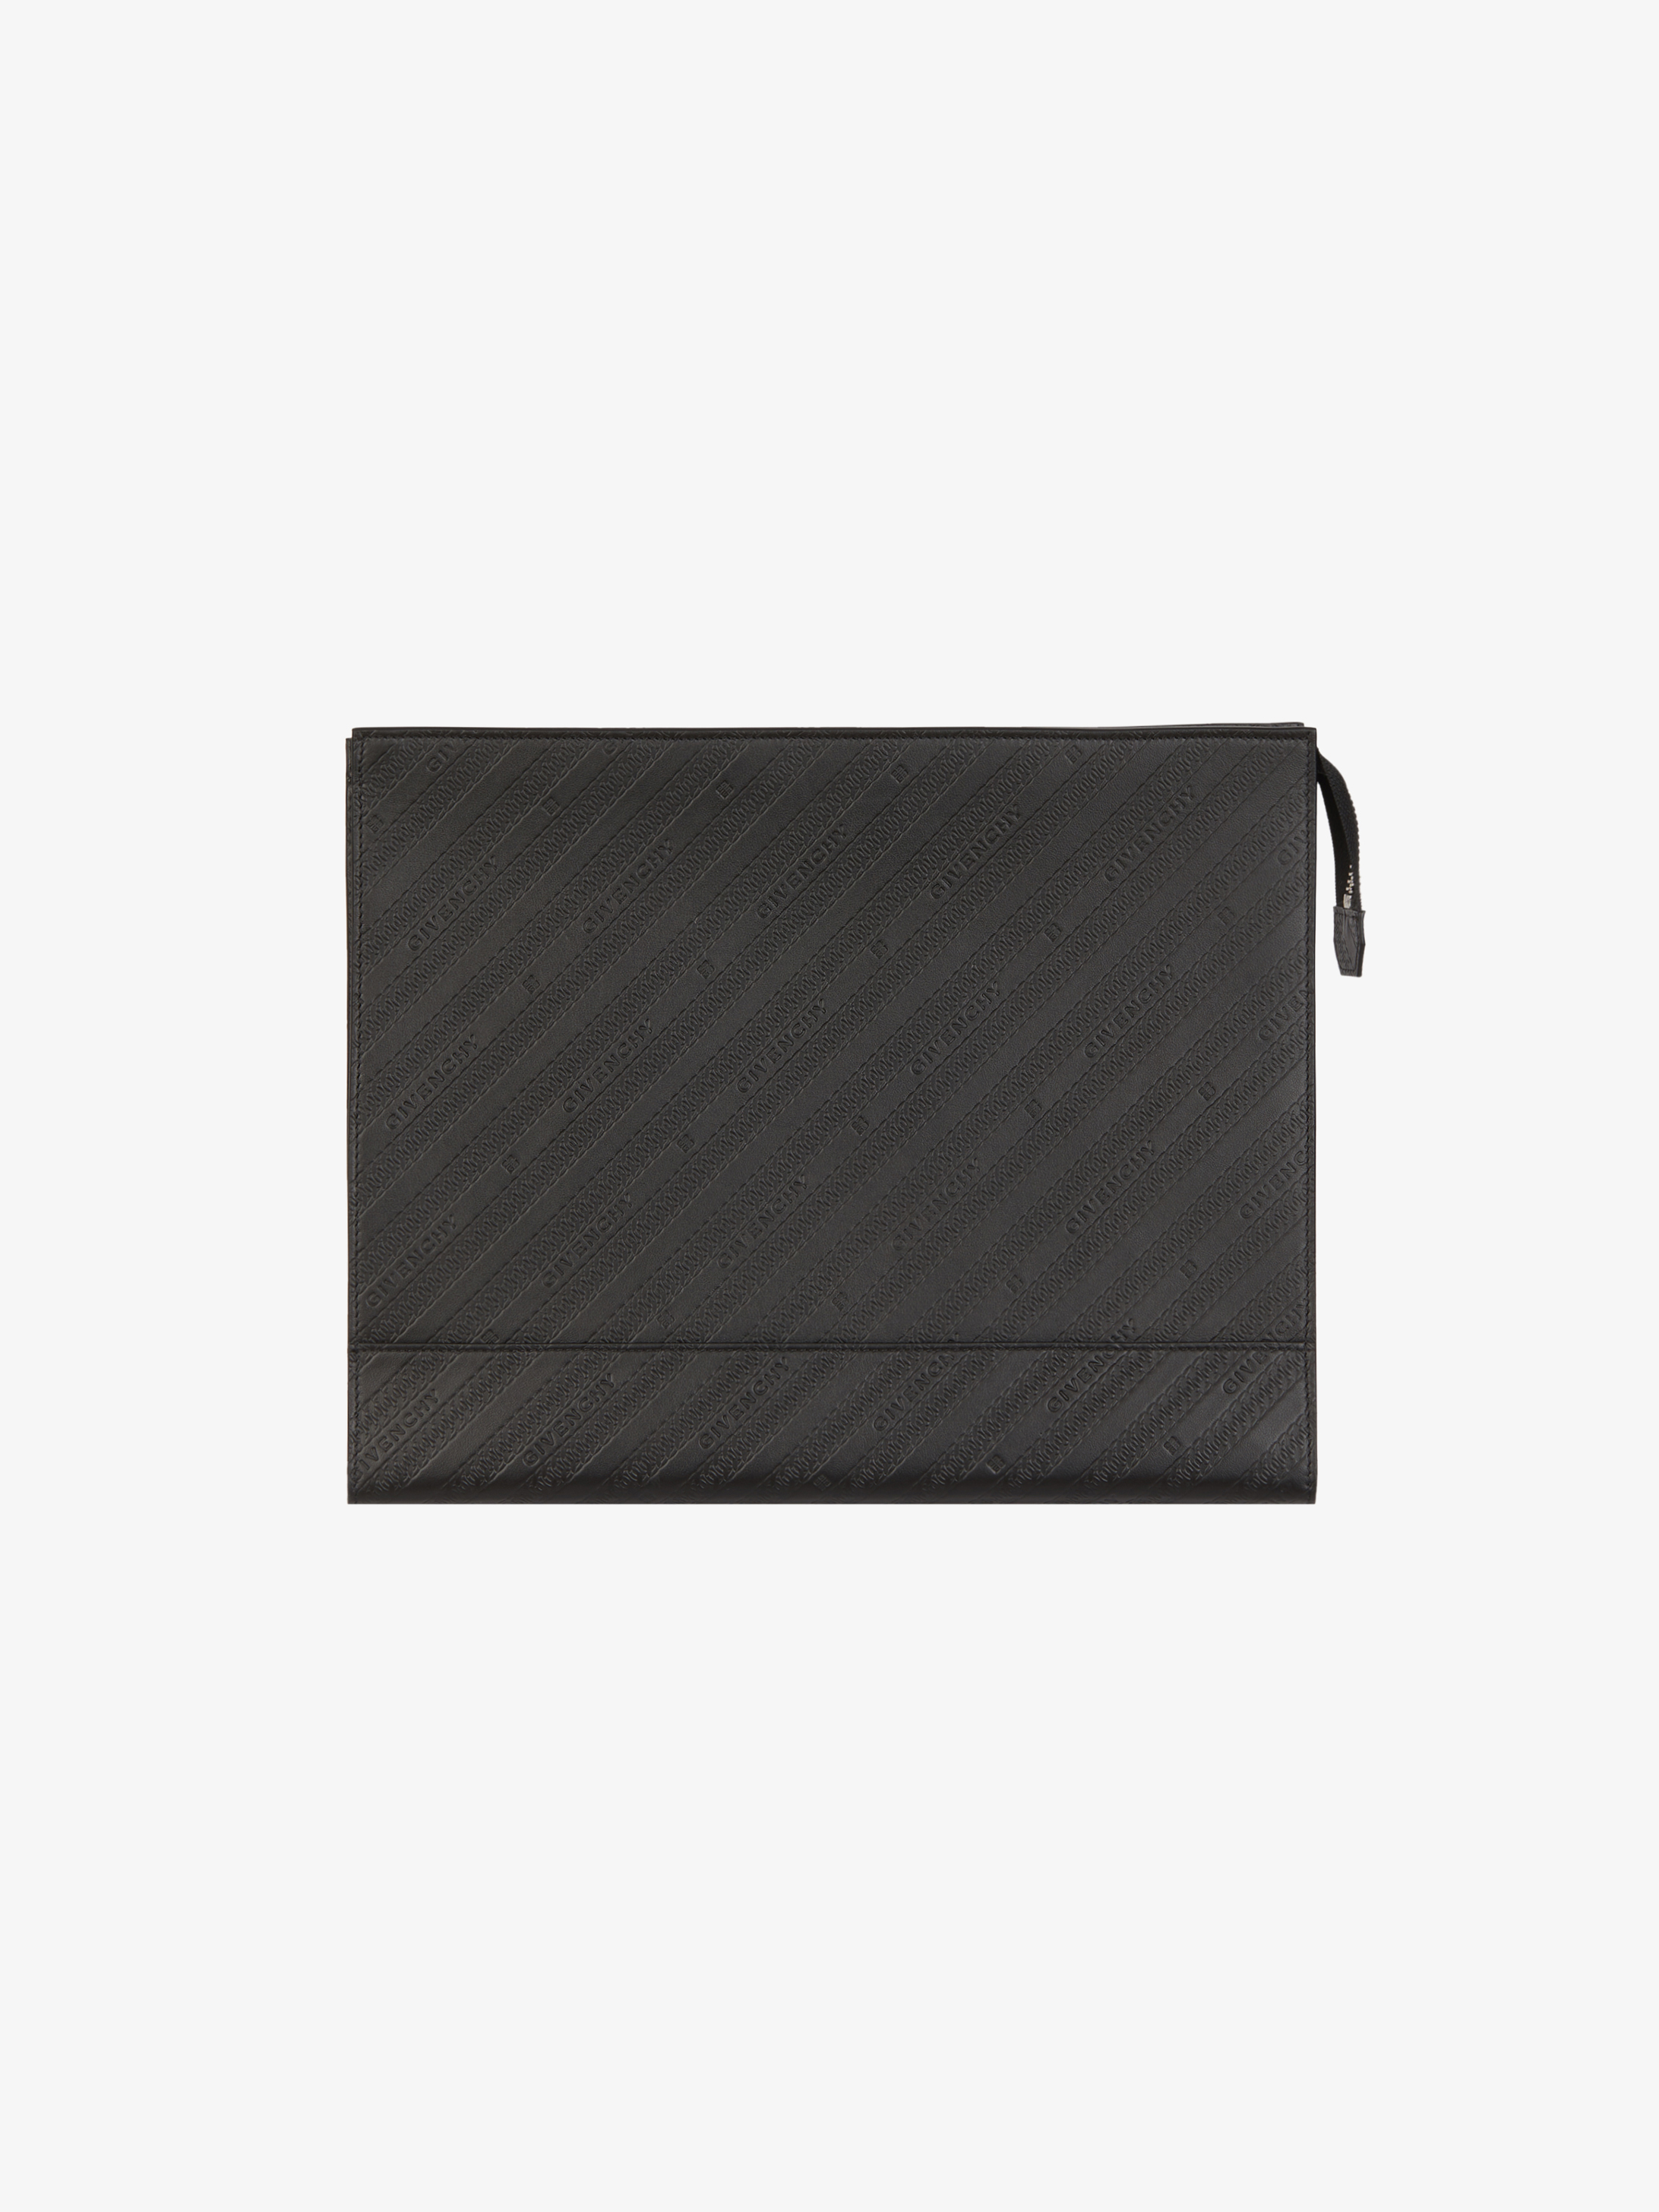 GIVENCHY large pouch with accordion pleat in leather